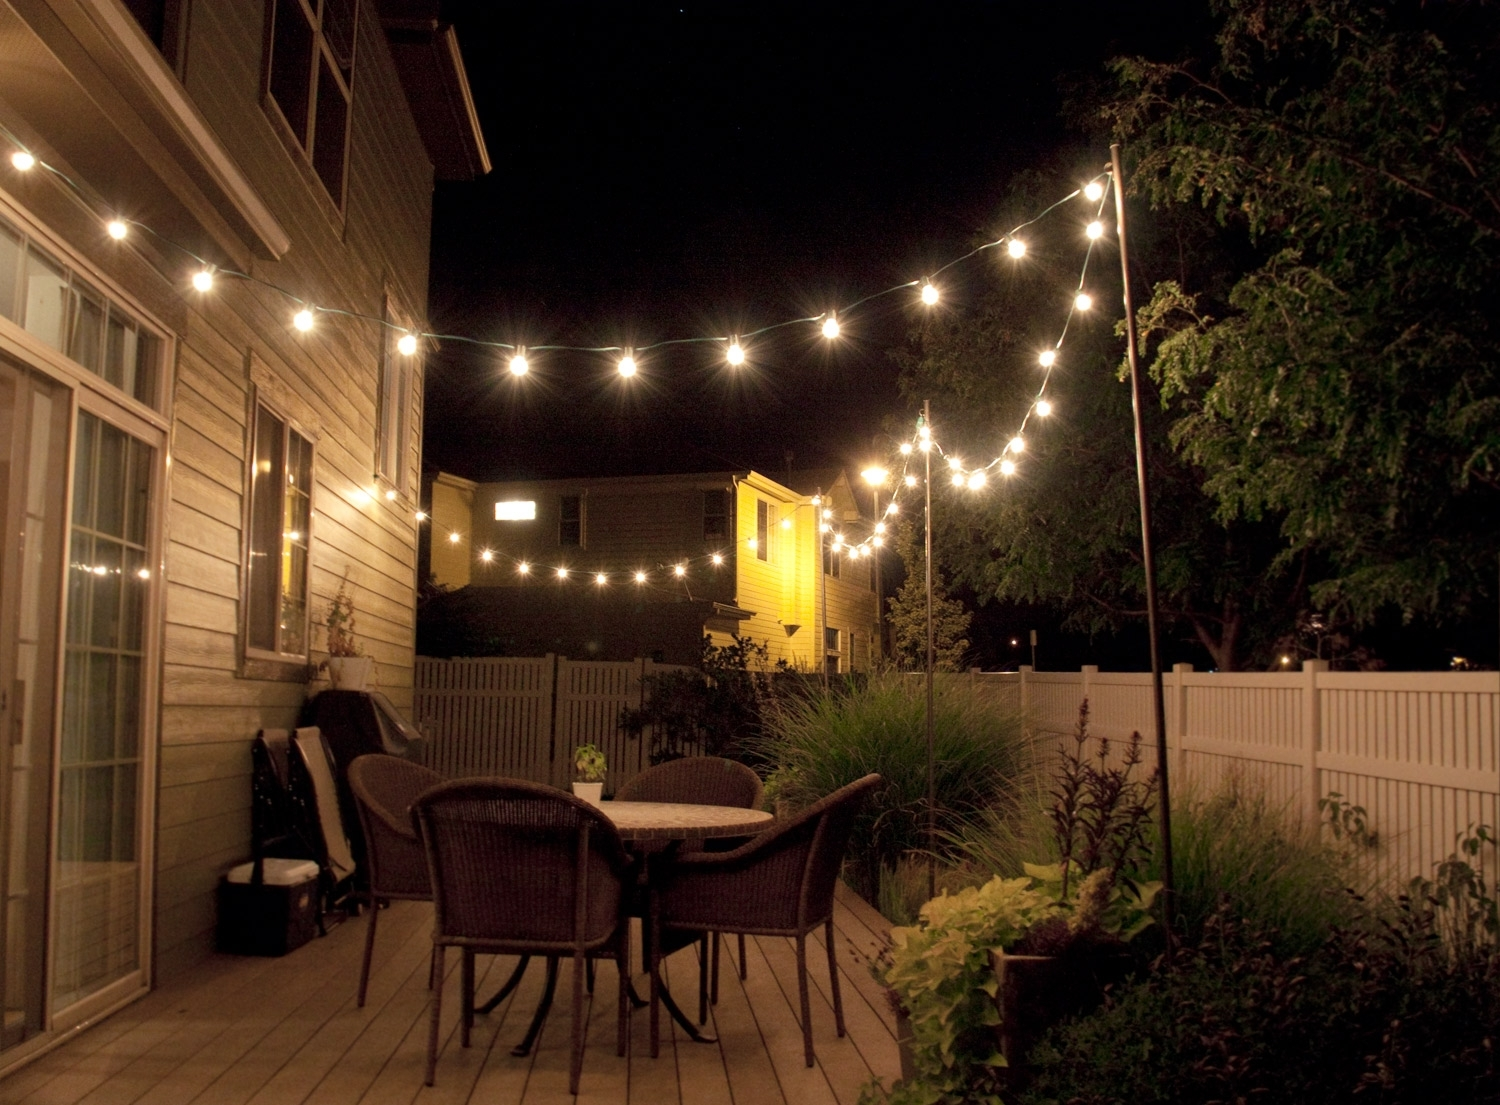 Outdoor Battery Operated Porch Lights — Bistrodre Porch And In Battery Operated Outdoor Lighting (#8 of 15)